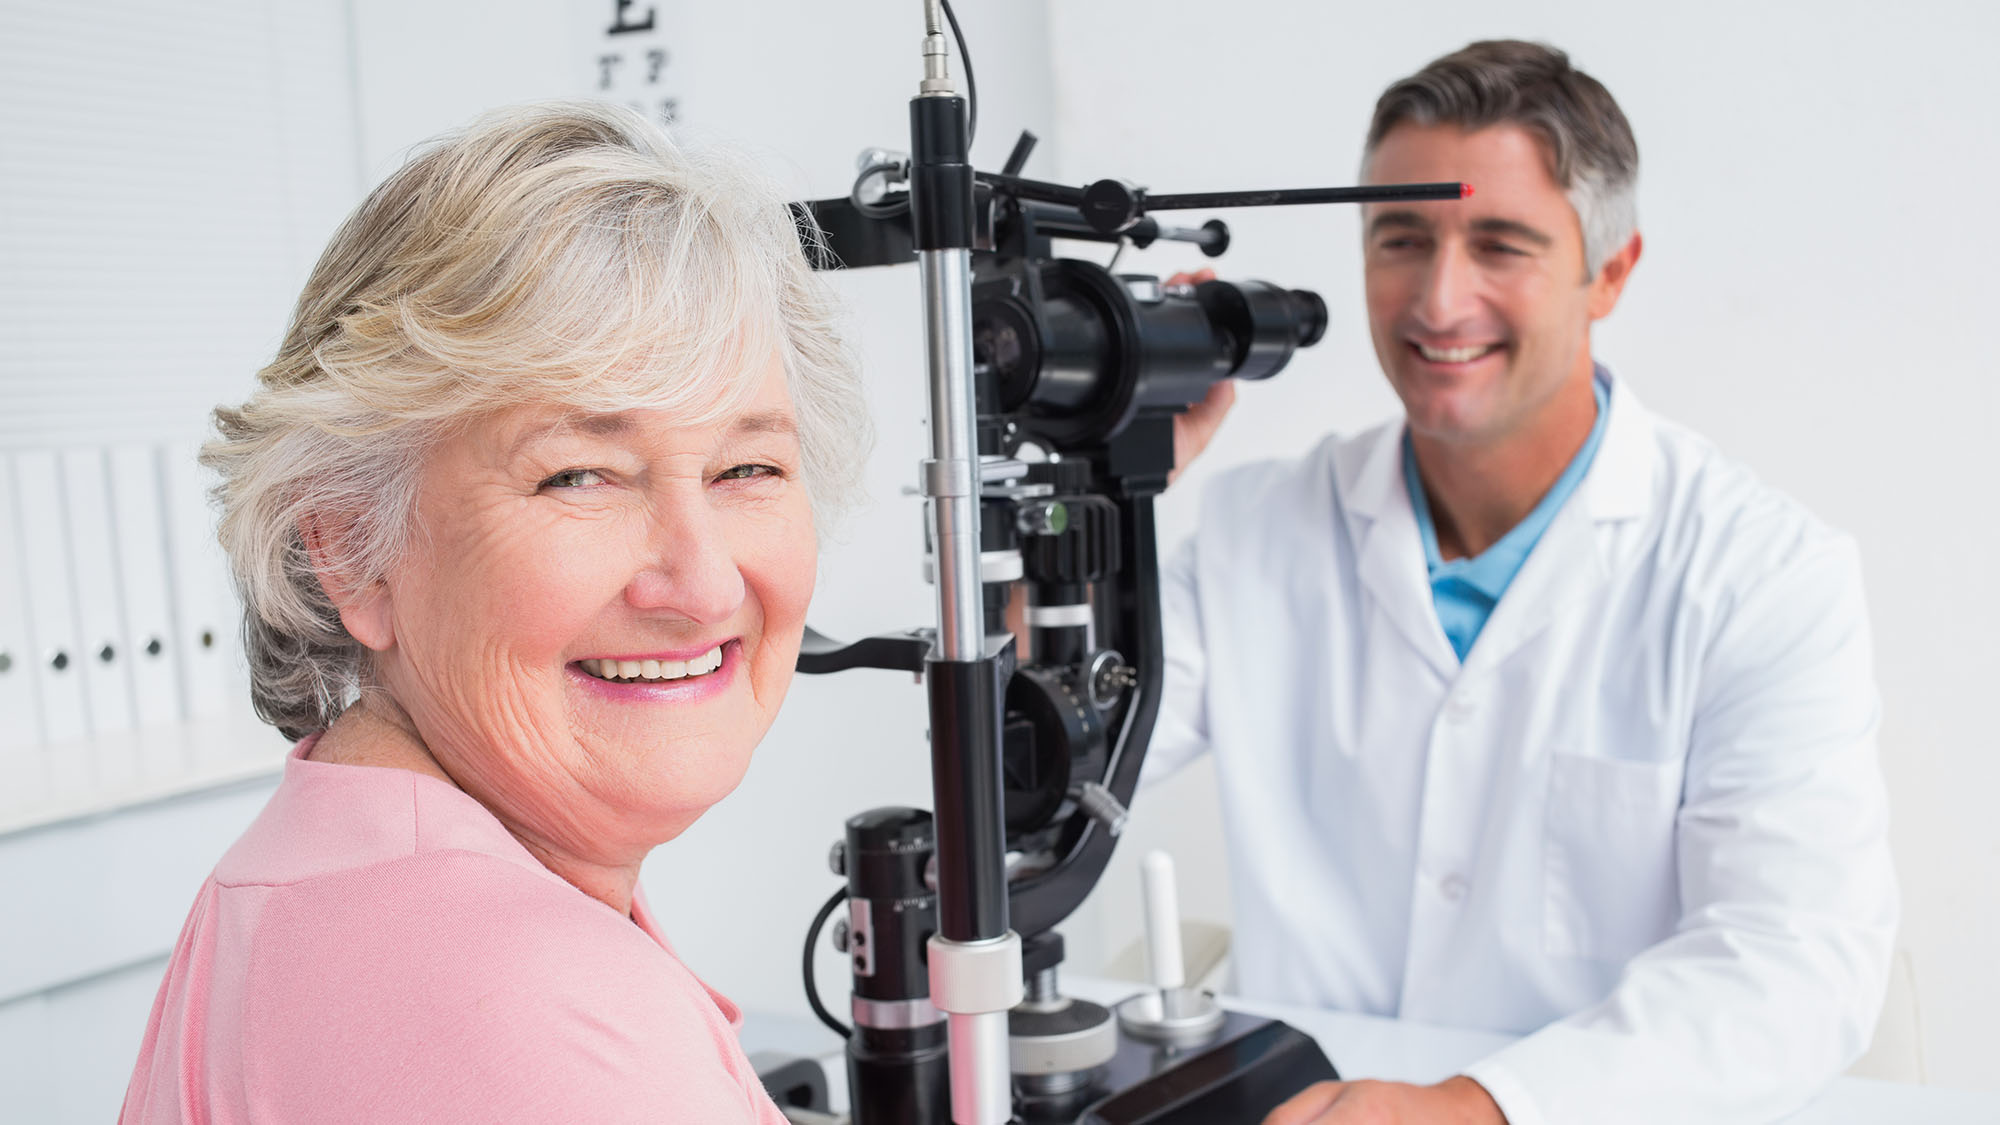 How often should you visit your optometrist?